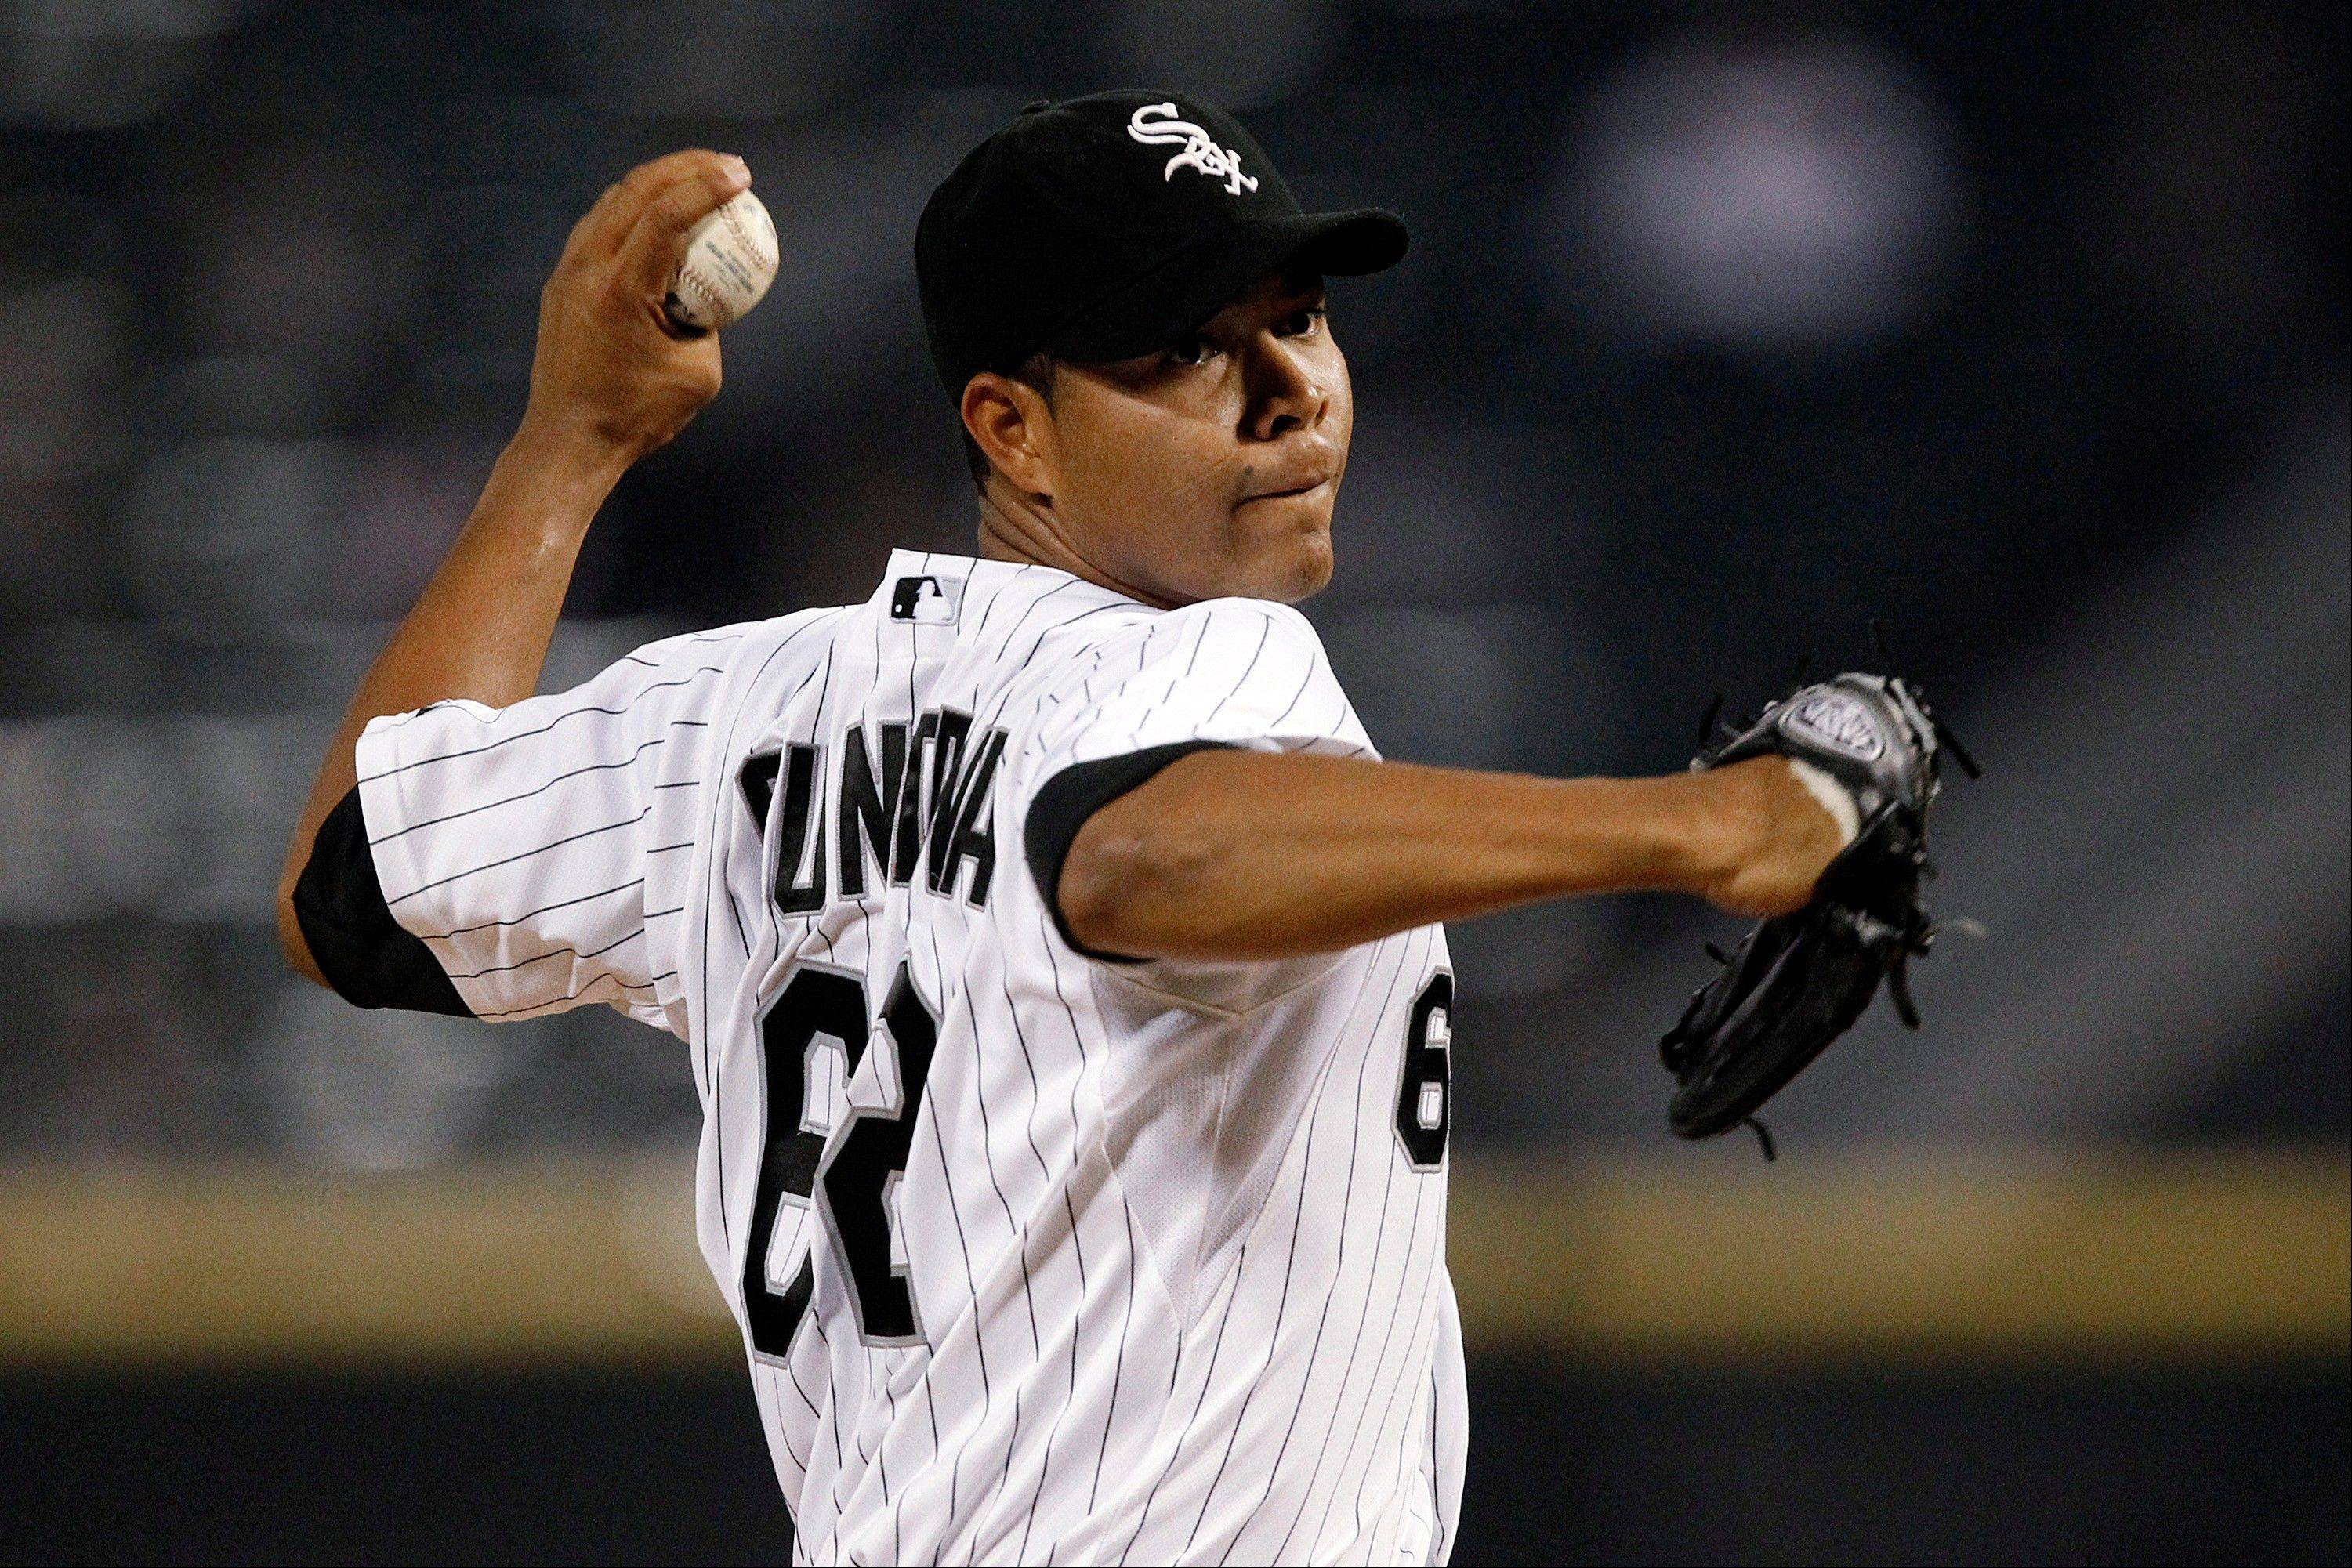 White Sox starting pitcher Jose Quintana improved to 8-6 with Tuesday night's victory over the Twins.